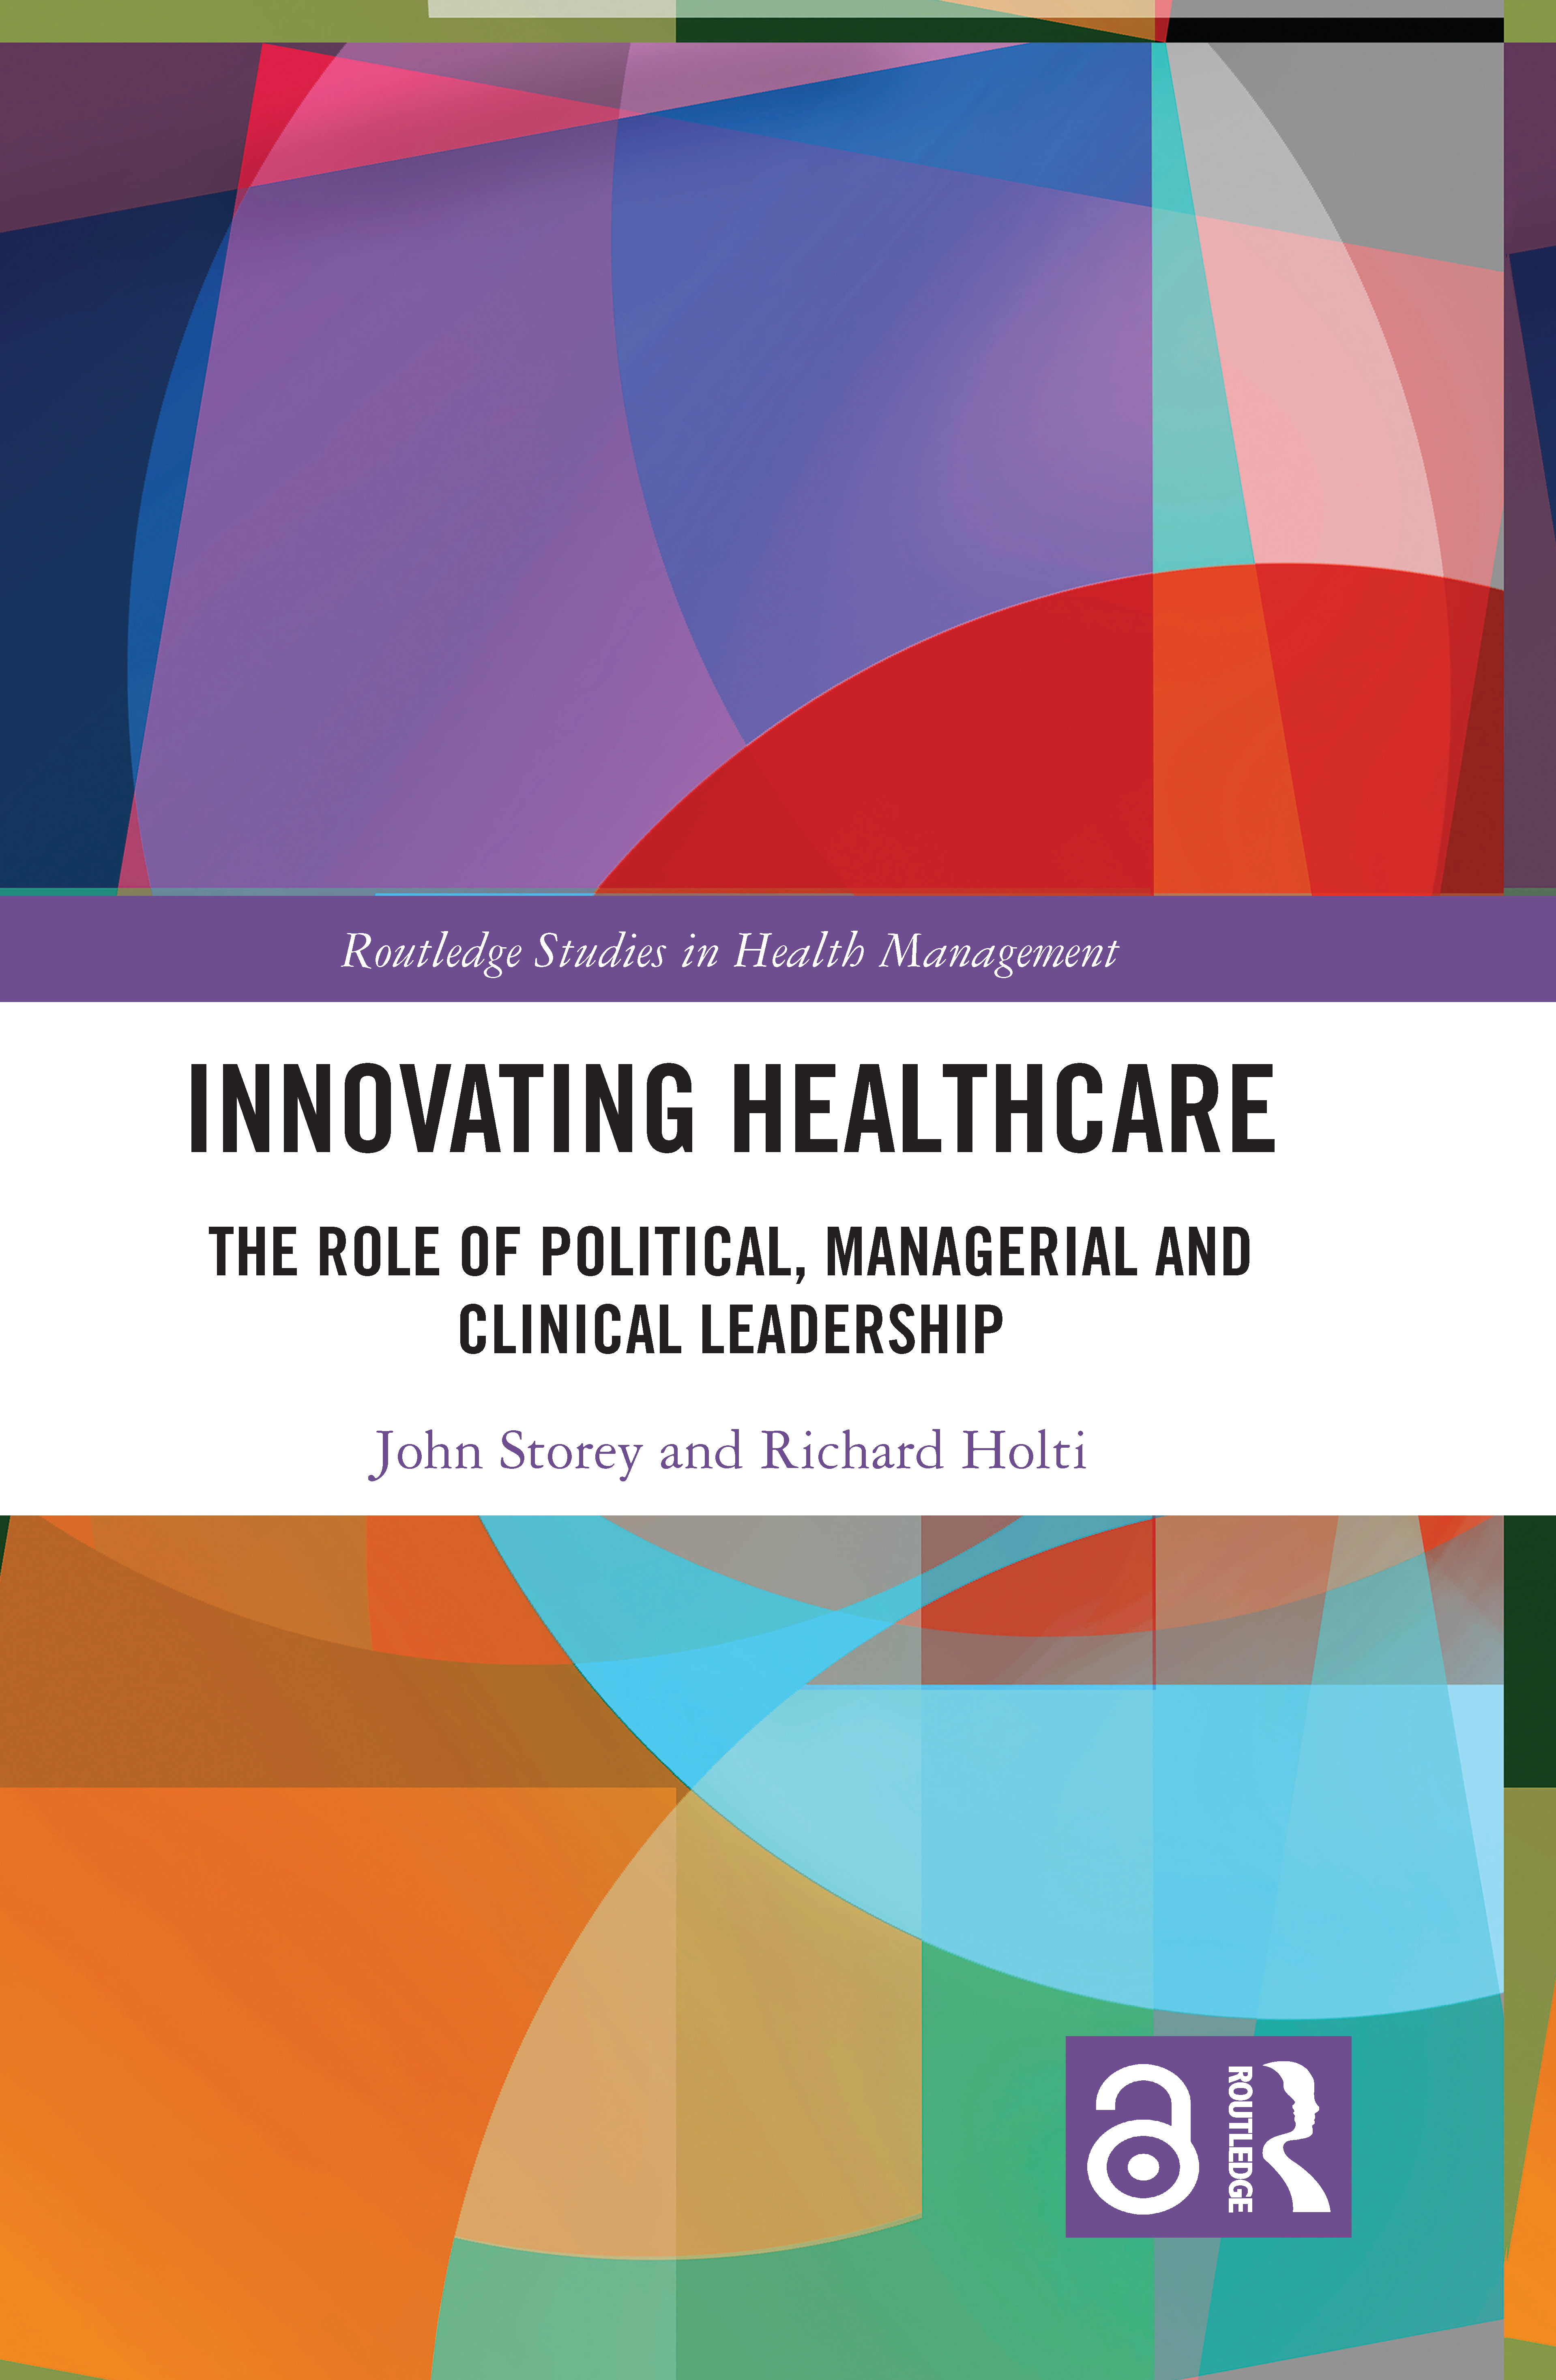 Innovating Healthcare: The Role of Political, Managerial and Clinical Leadership book cover